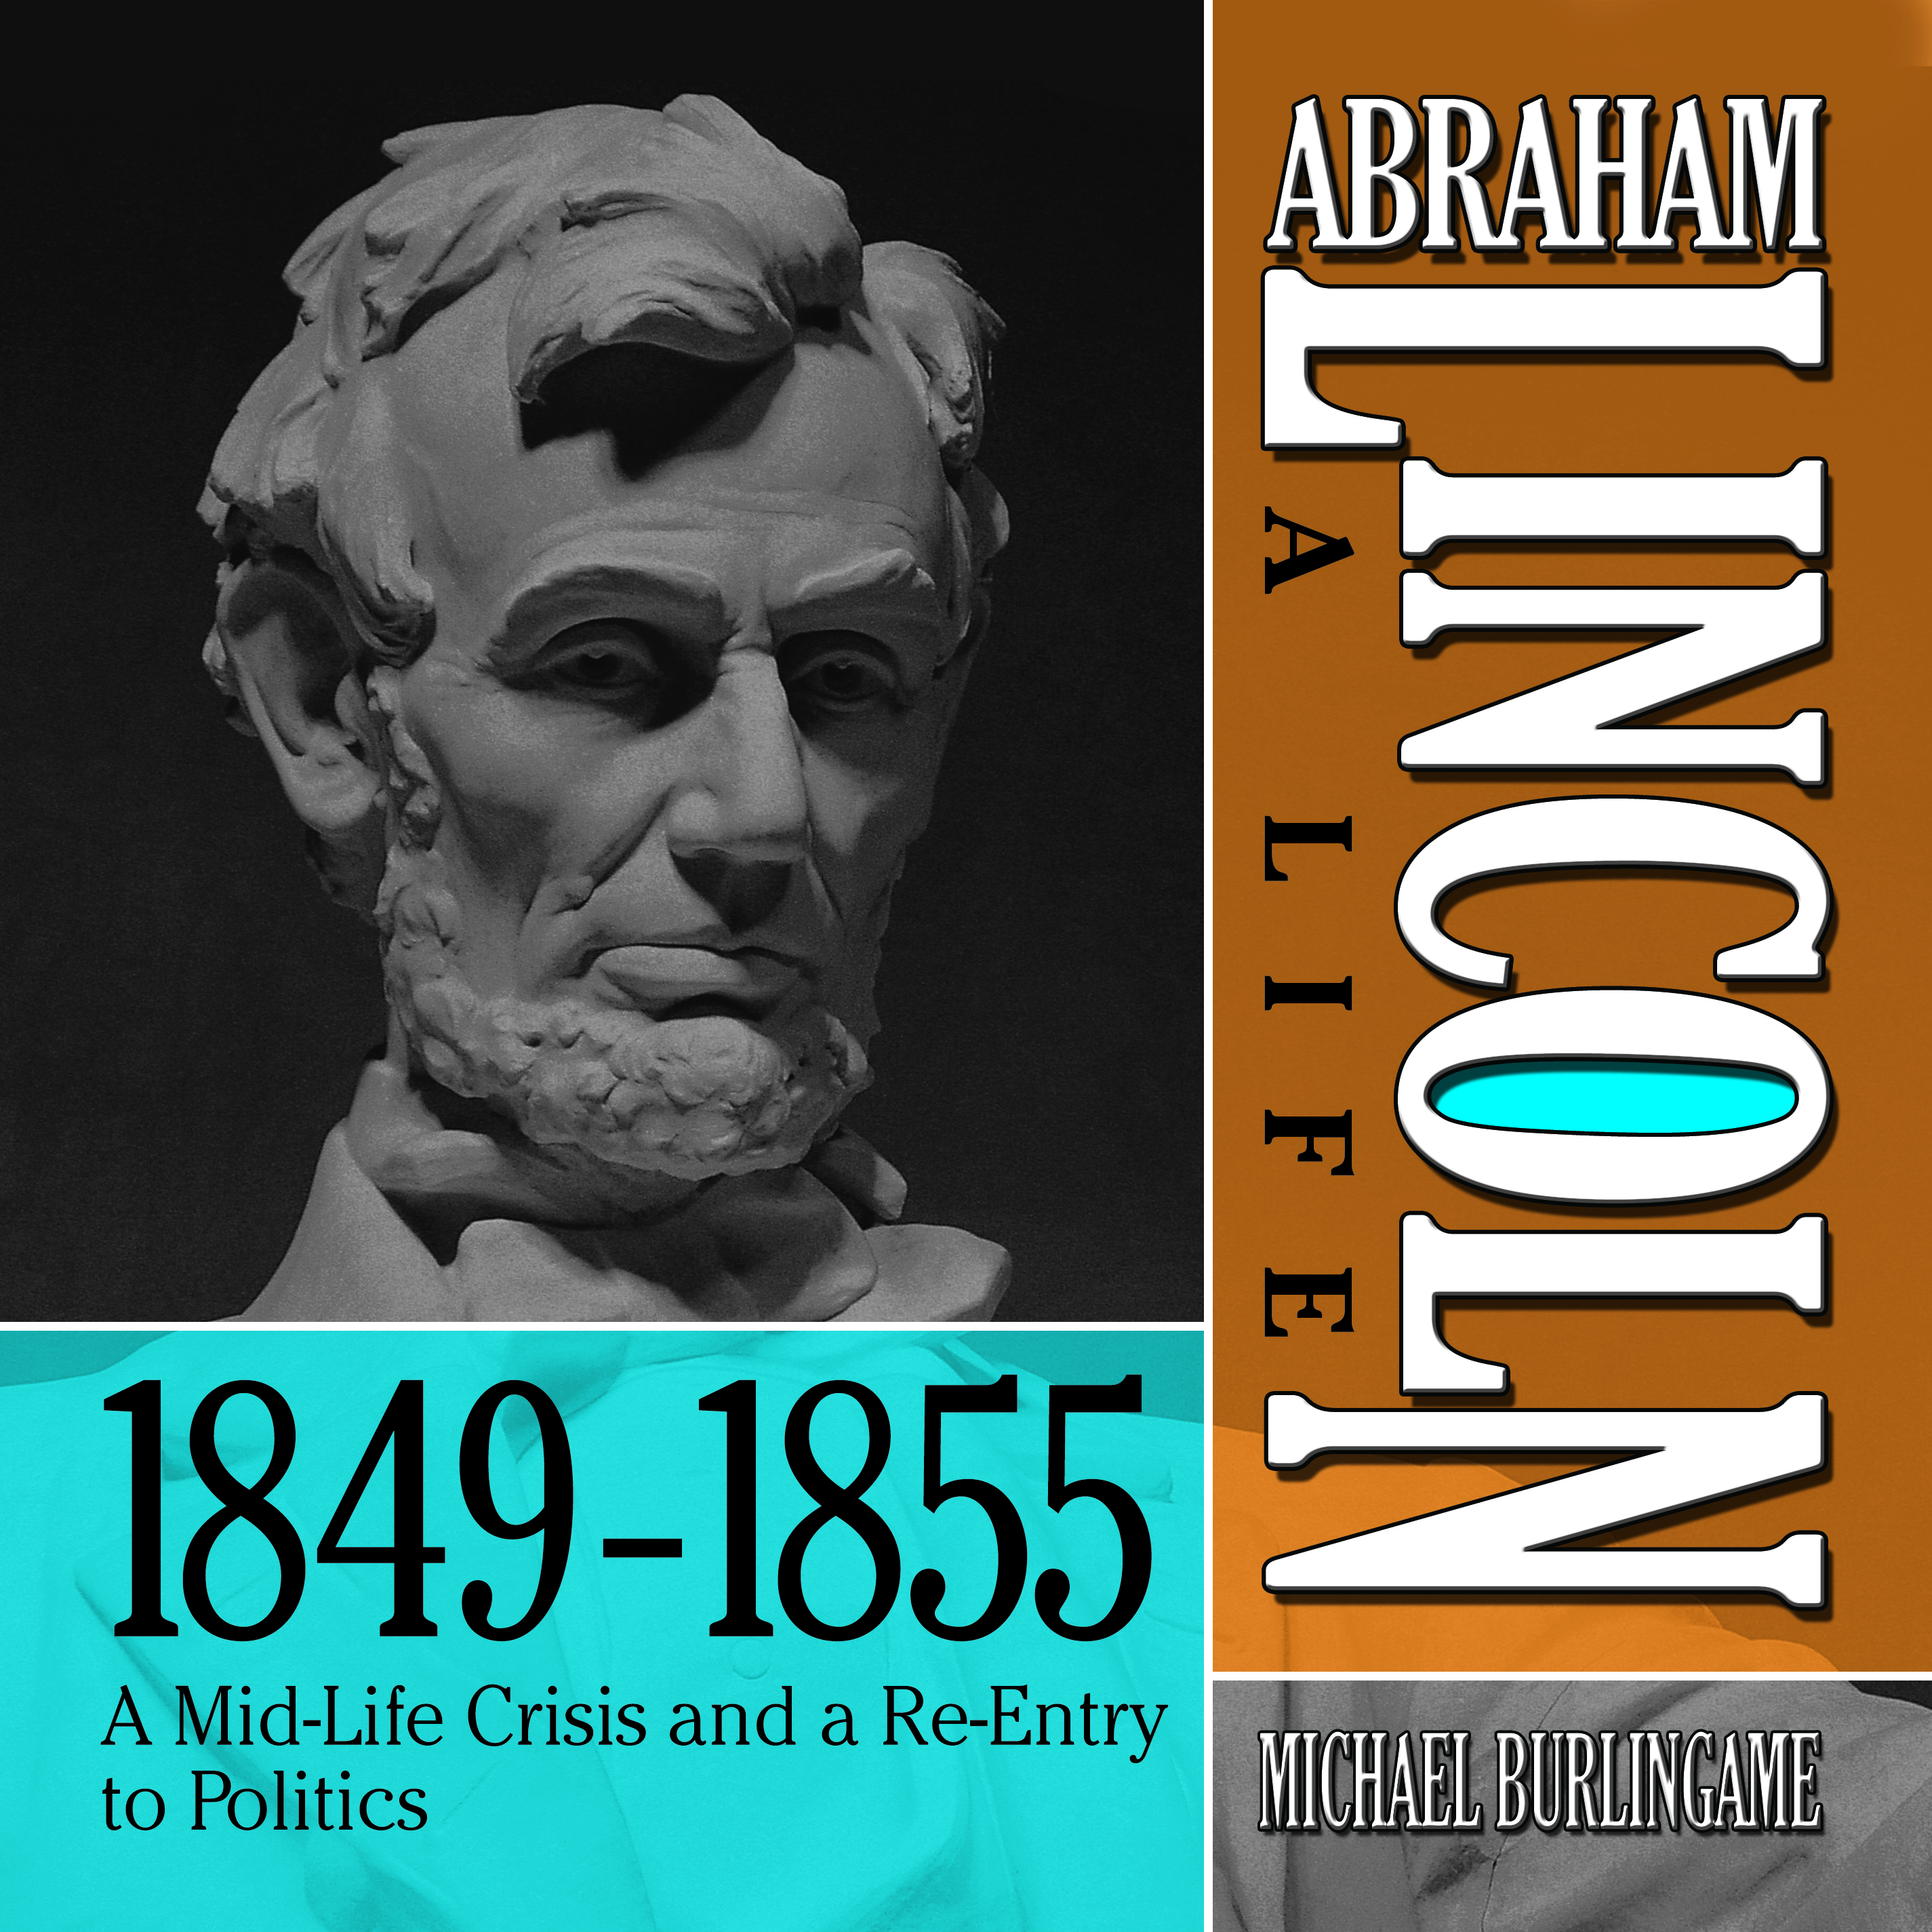 Printable Abraham Lincoln: A Life  1849-1855: A Mid-Life Crisis and a Re-Entry to Politics Audiobook Cover Art